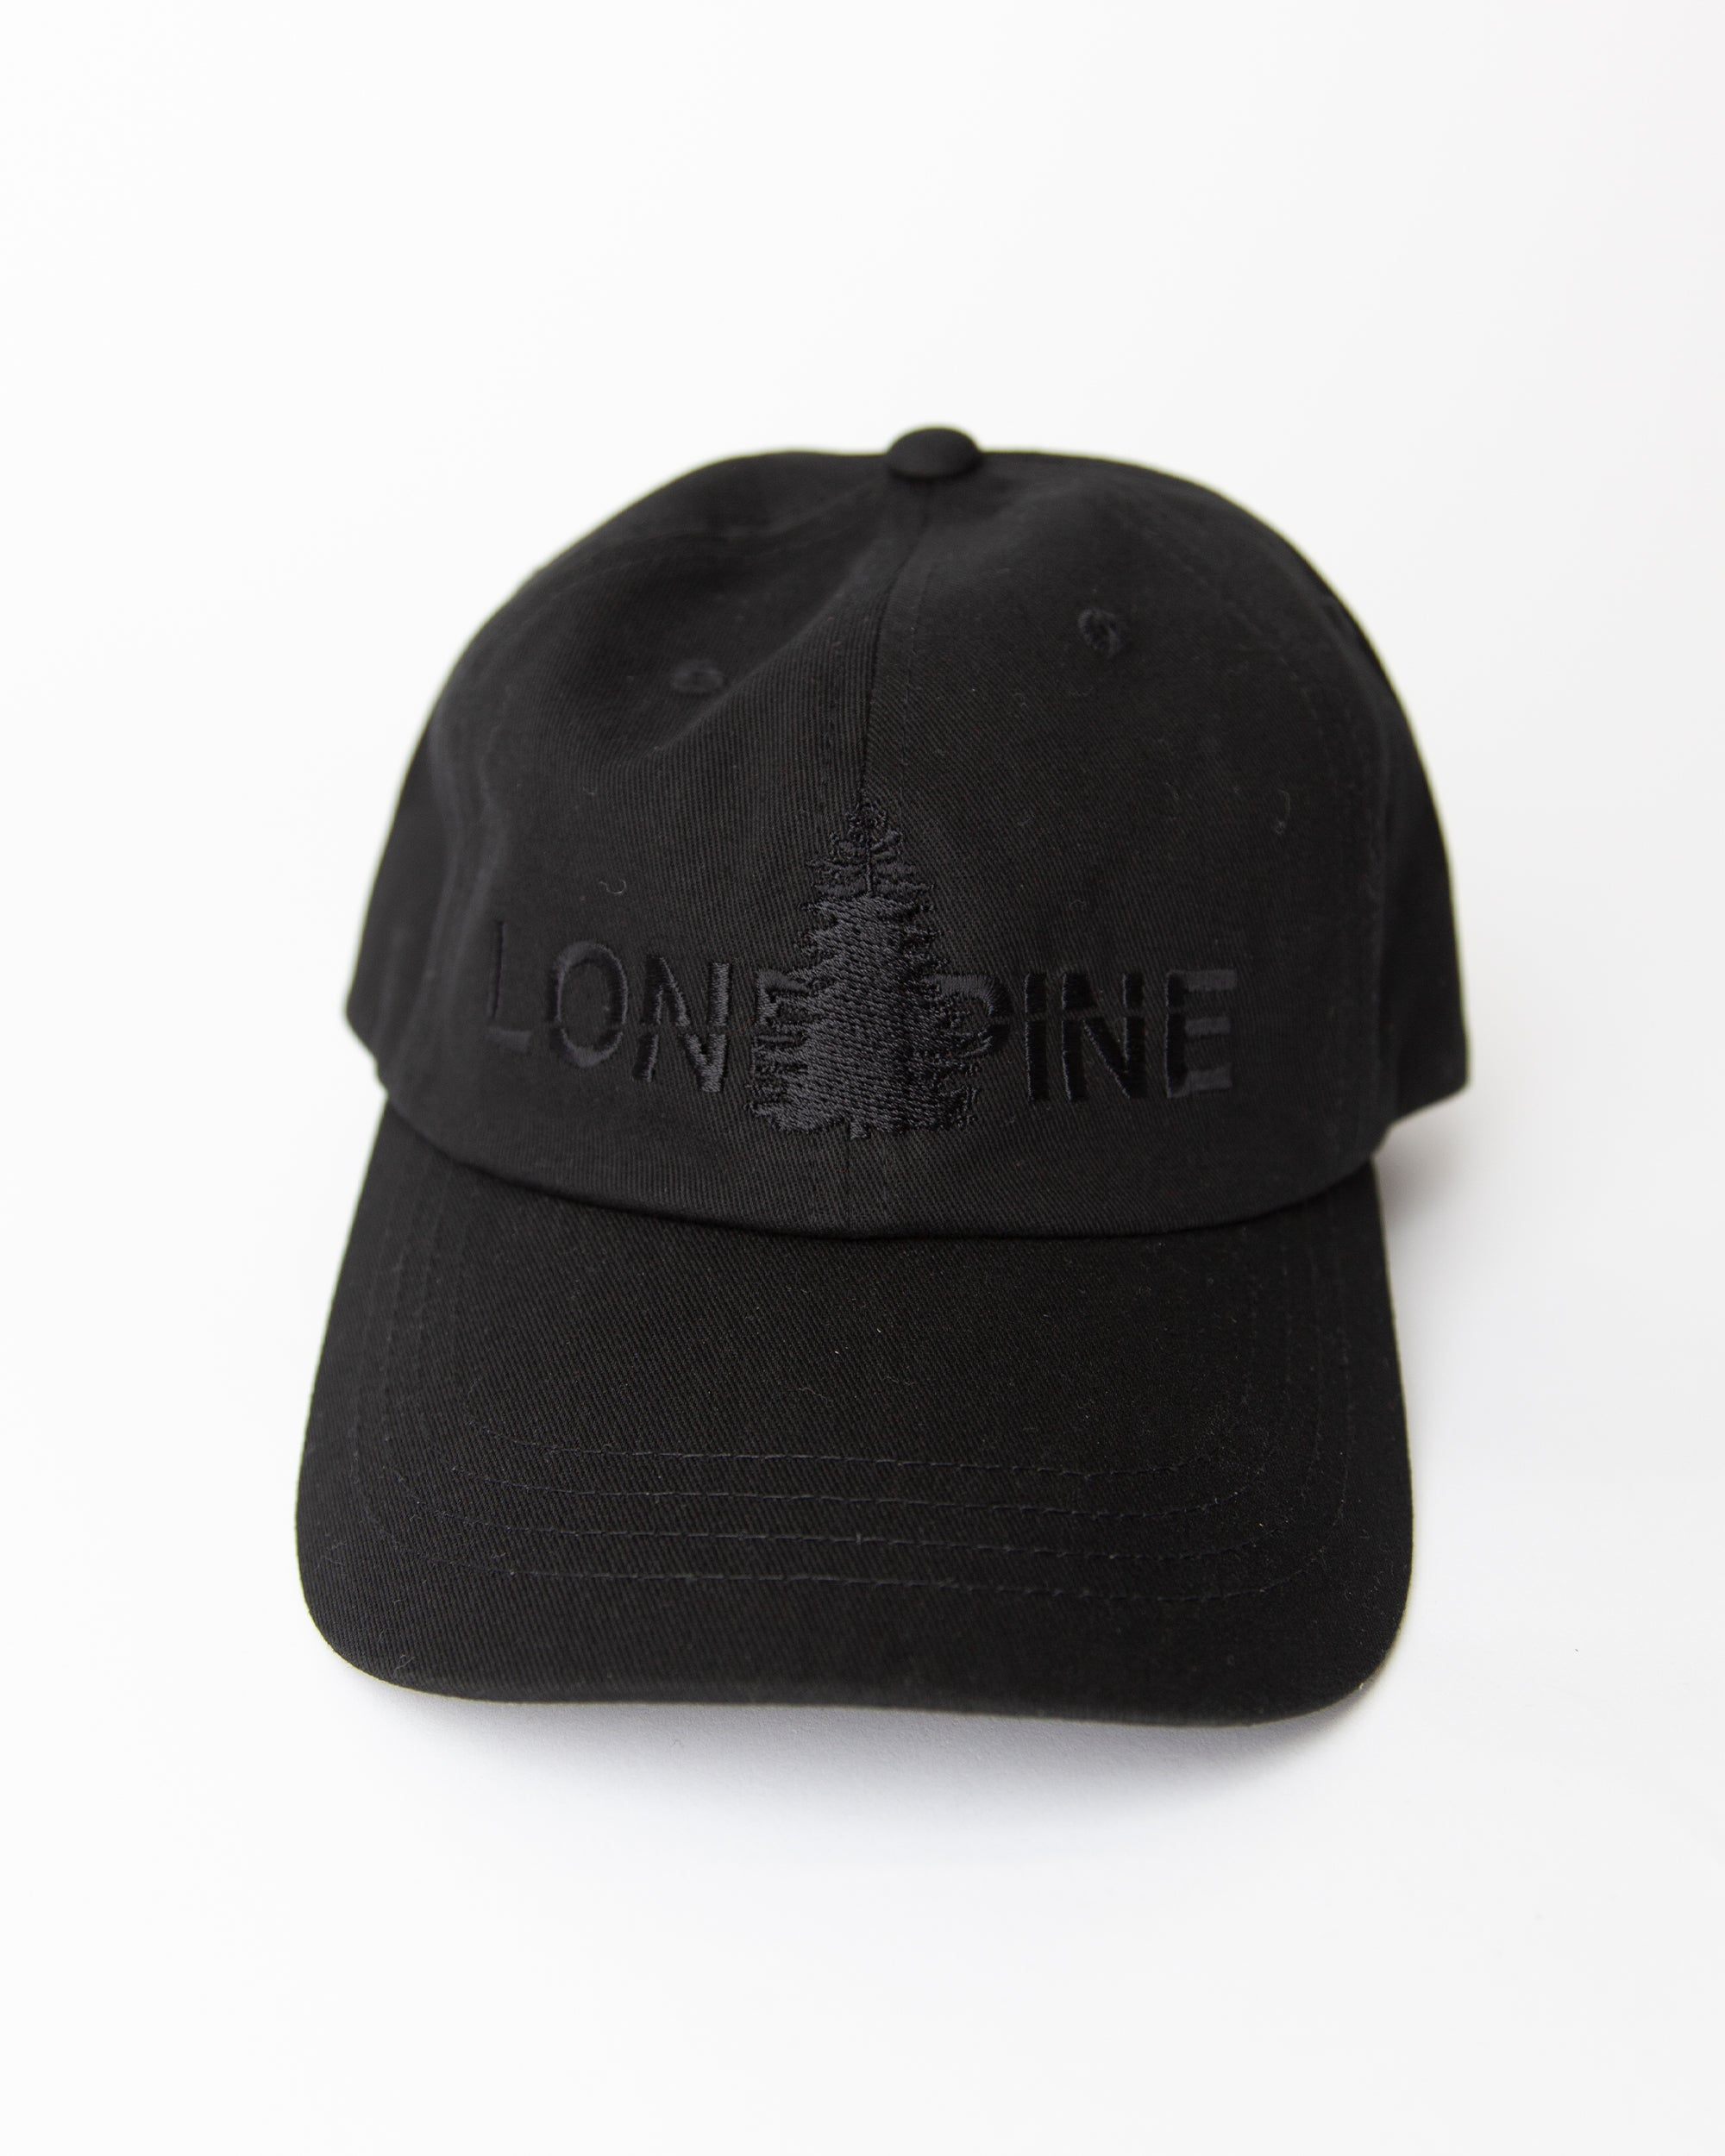 Lone Pine - Lone Pine Hat in Black